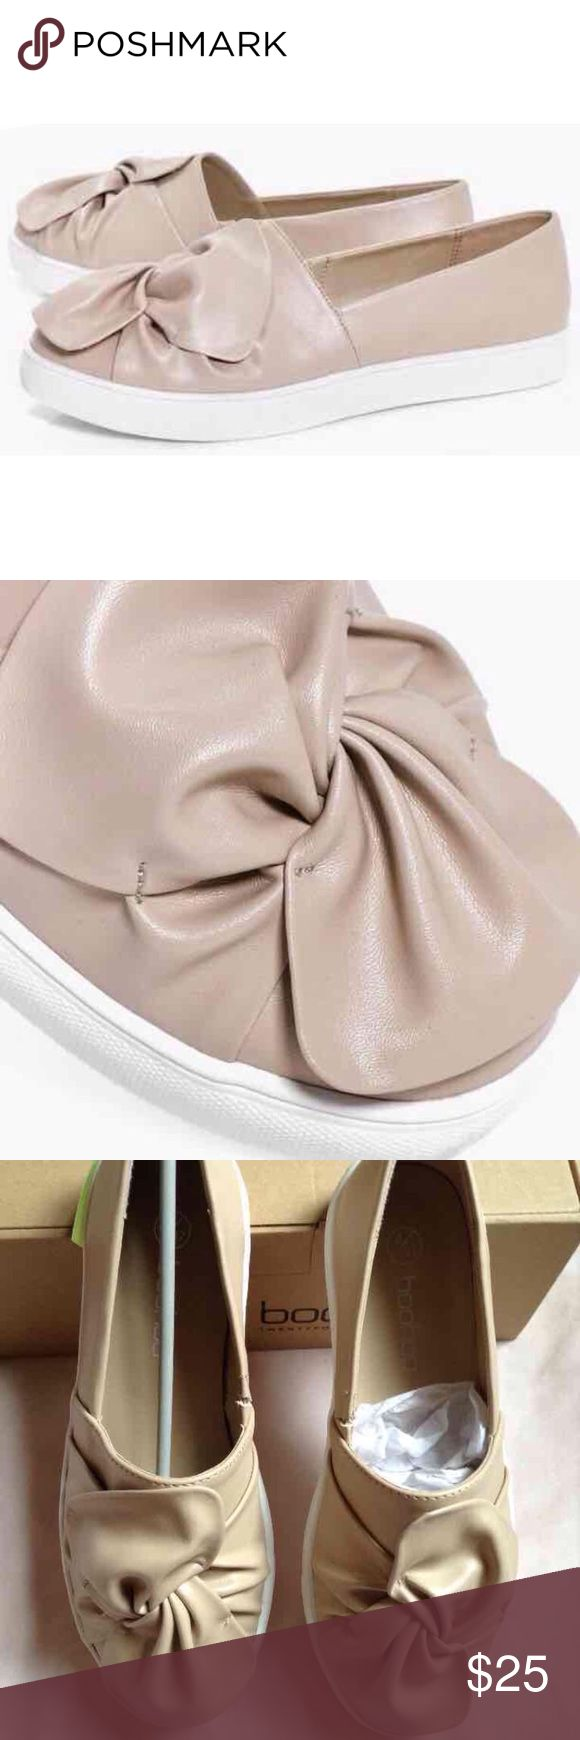 Nude Leather Bow Sneakers New with tags in box(: Never used. Size 6.5 in US Women's purchased from BooHoo #new #boohoo #leather #nude #beige #fashion #sneakers #womens #ladies #nwt #newinbox #slipon #loafers #flats Boohoo Shoes Sneakers